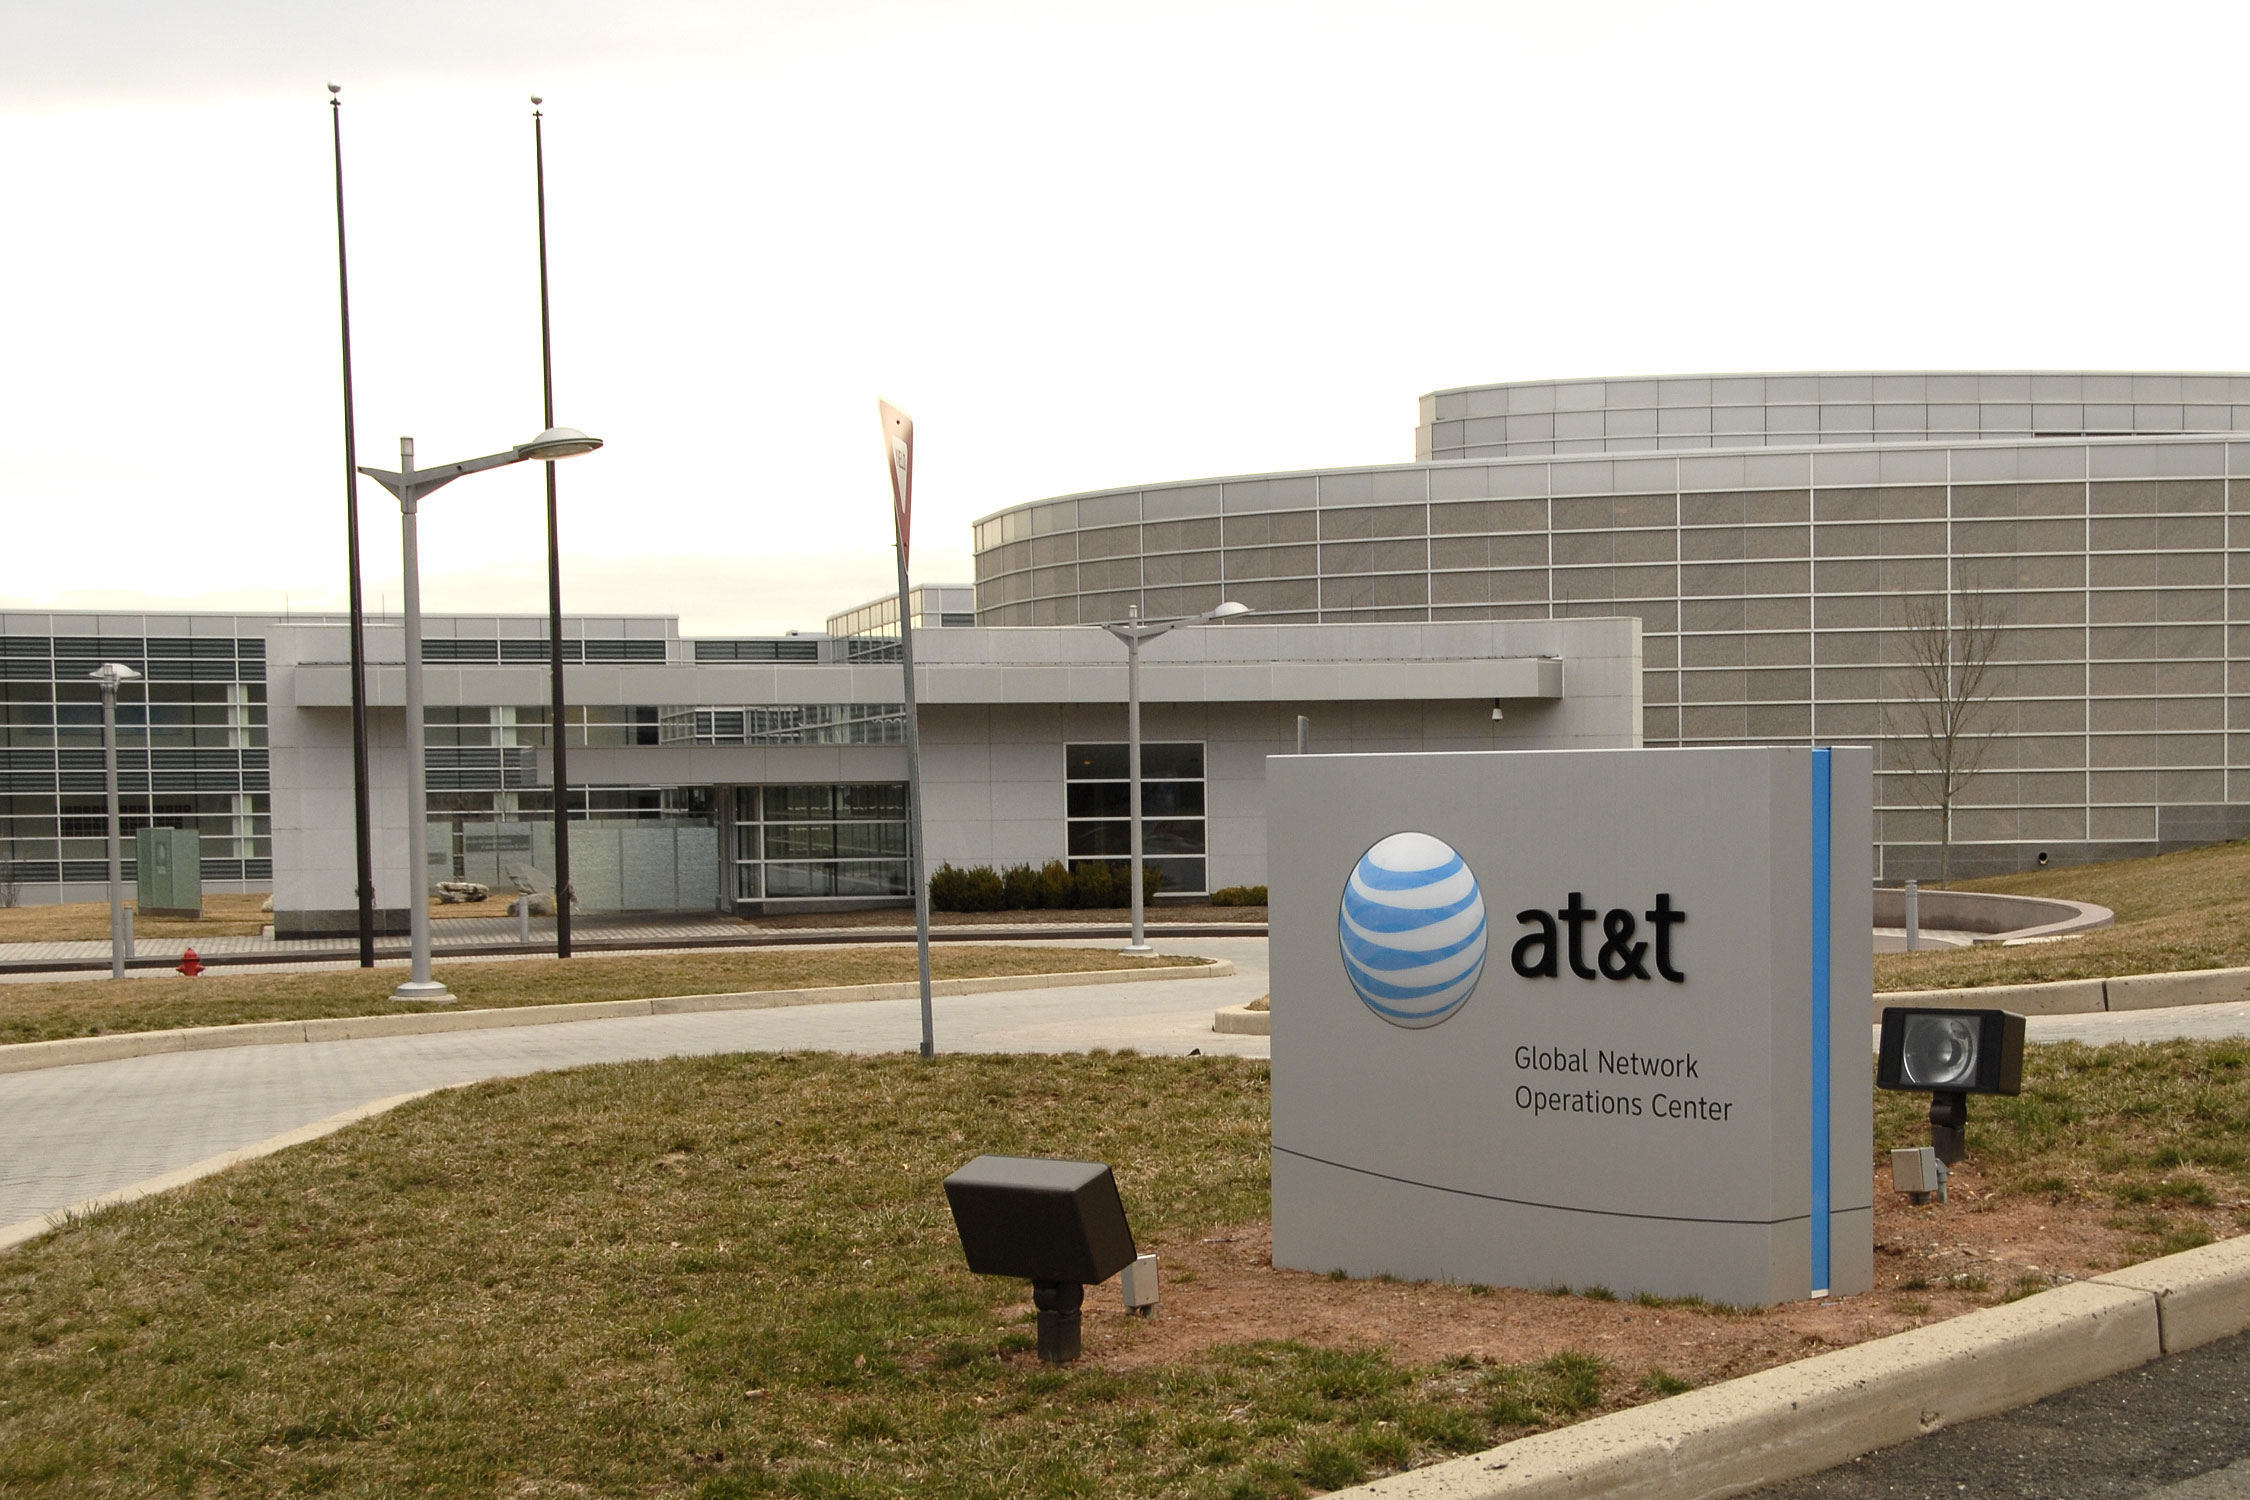 AT&T Global Network Operations Center